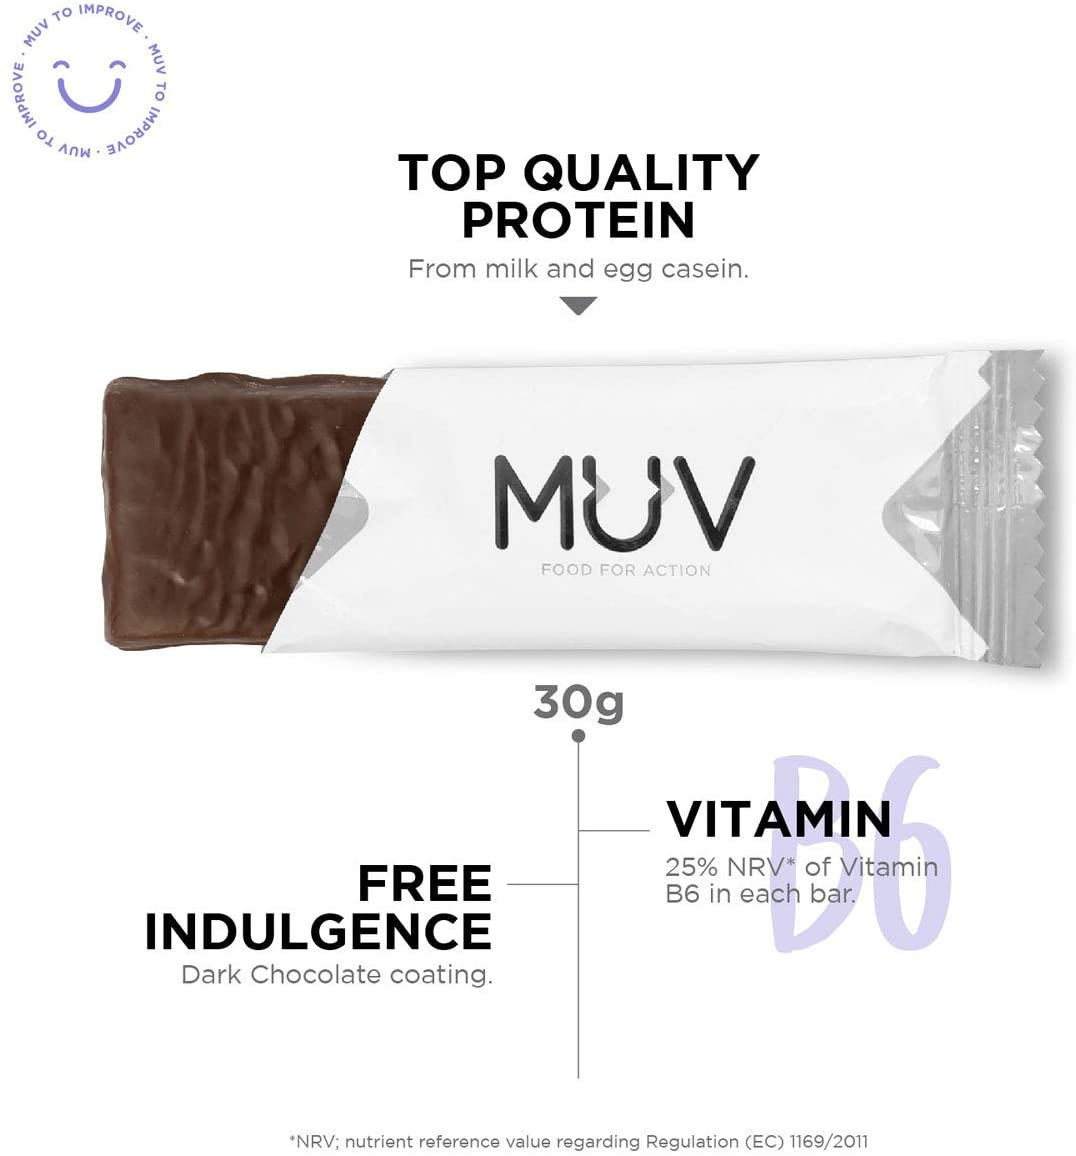 Muv-Food-For-Action-Protein-Bar-Chocolate-Fudge-Flavour-12-x-30-g thumbnail 3